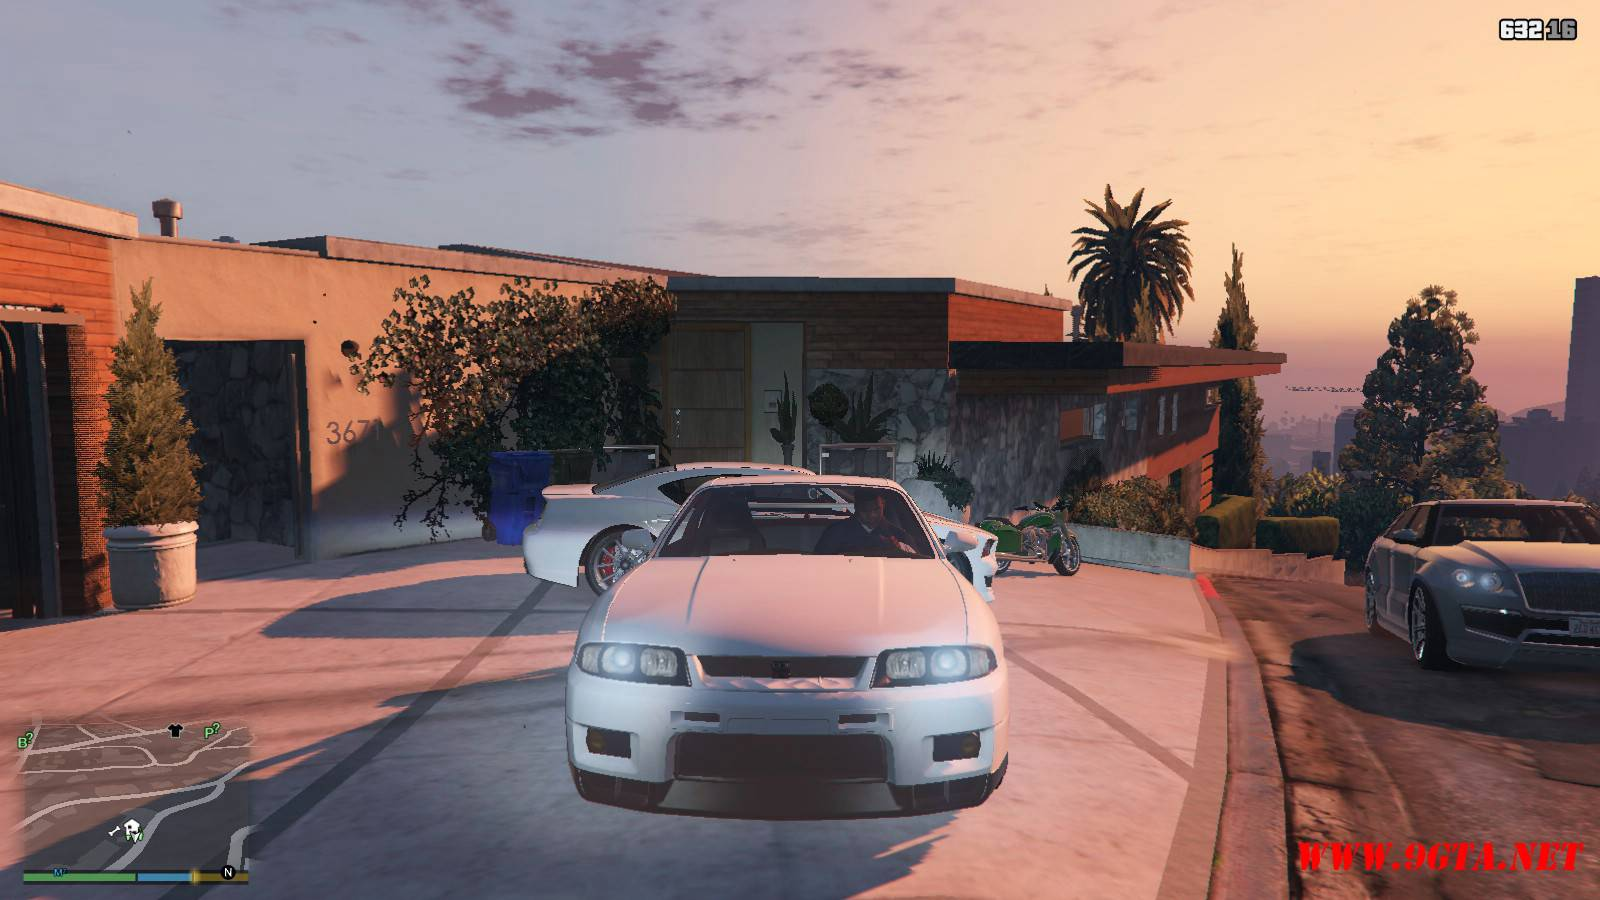 1996 Nissan Skyline GT-R R33 Mod For GTA5 (10)